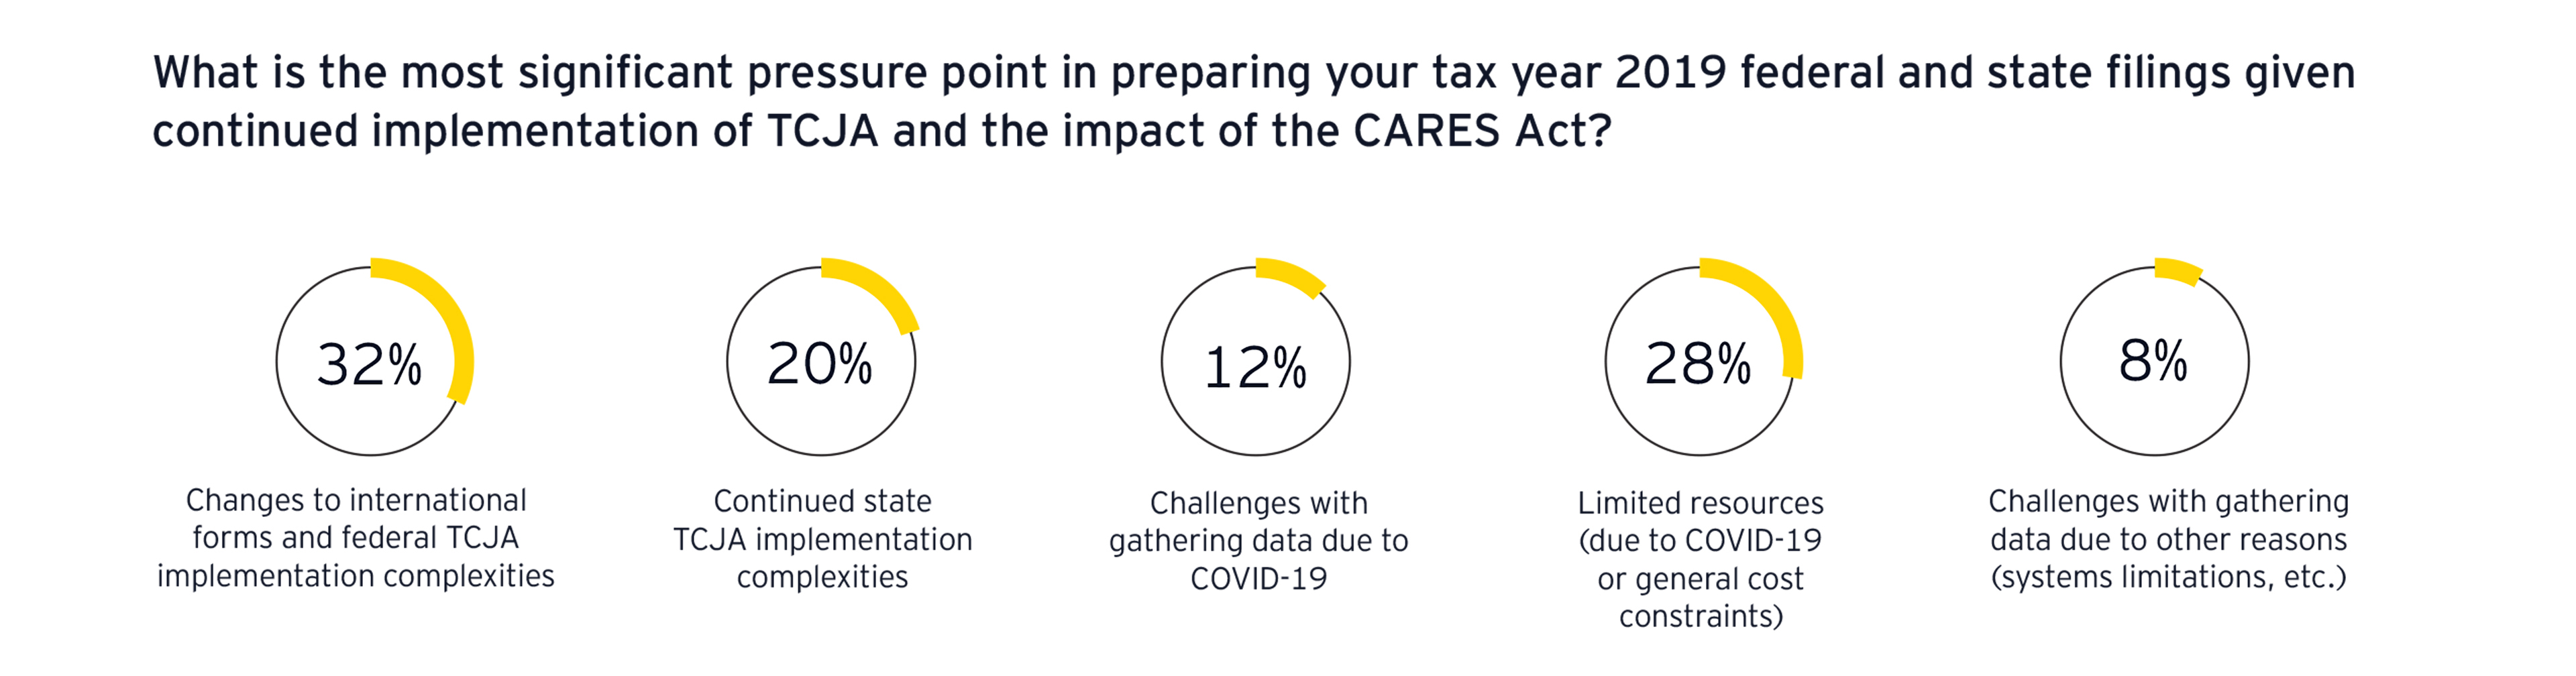 ey-most-significant-pressure-point-in-preparing-your-tax-year-1